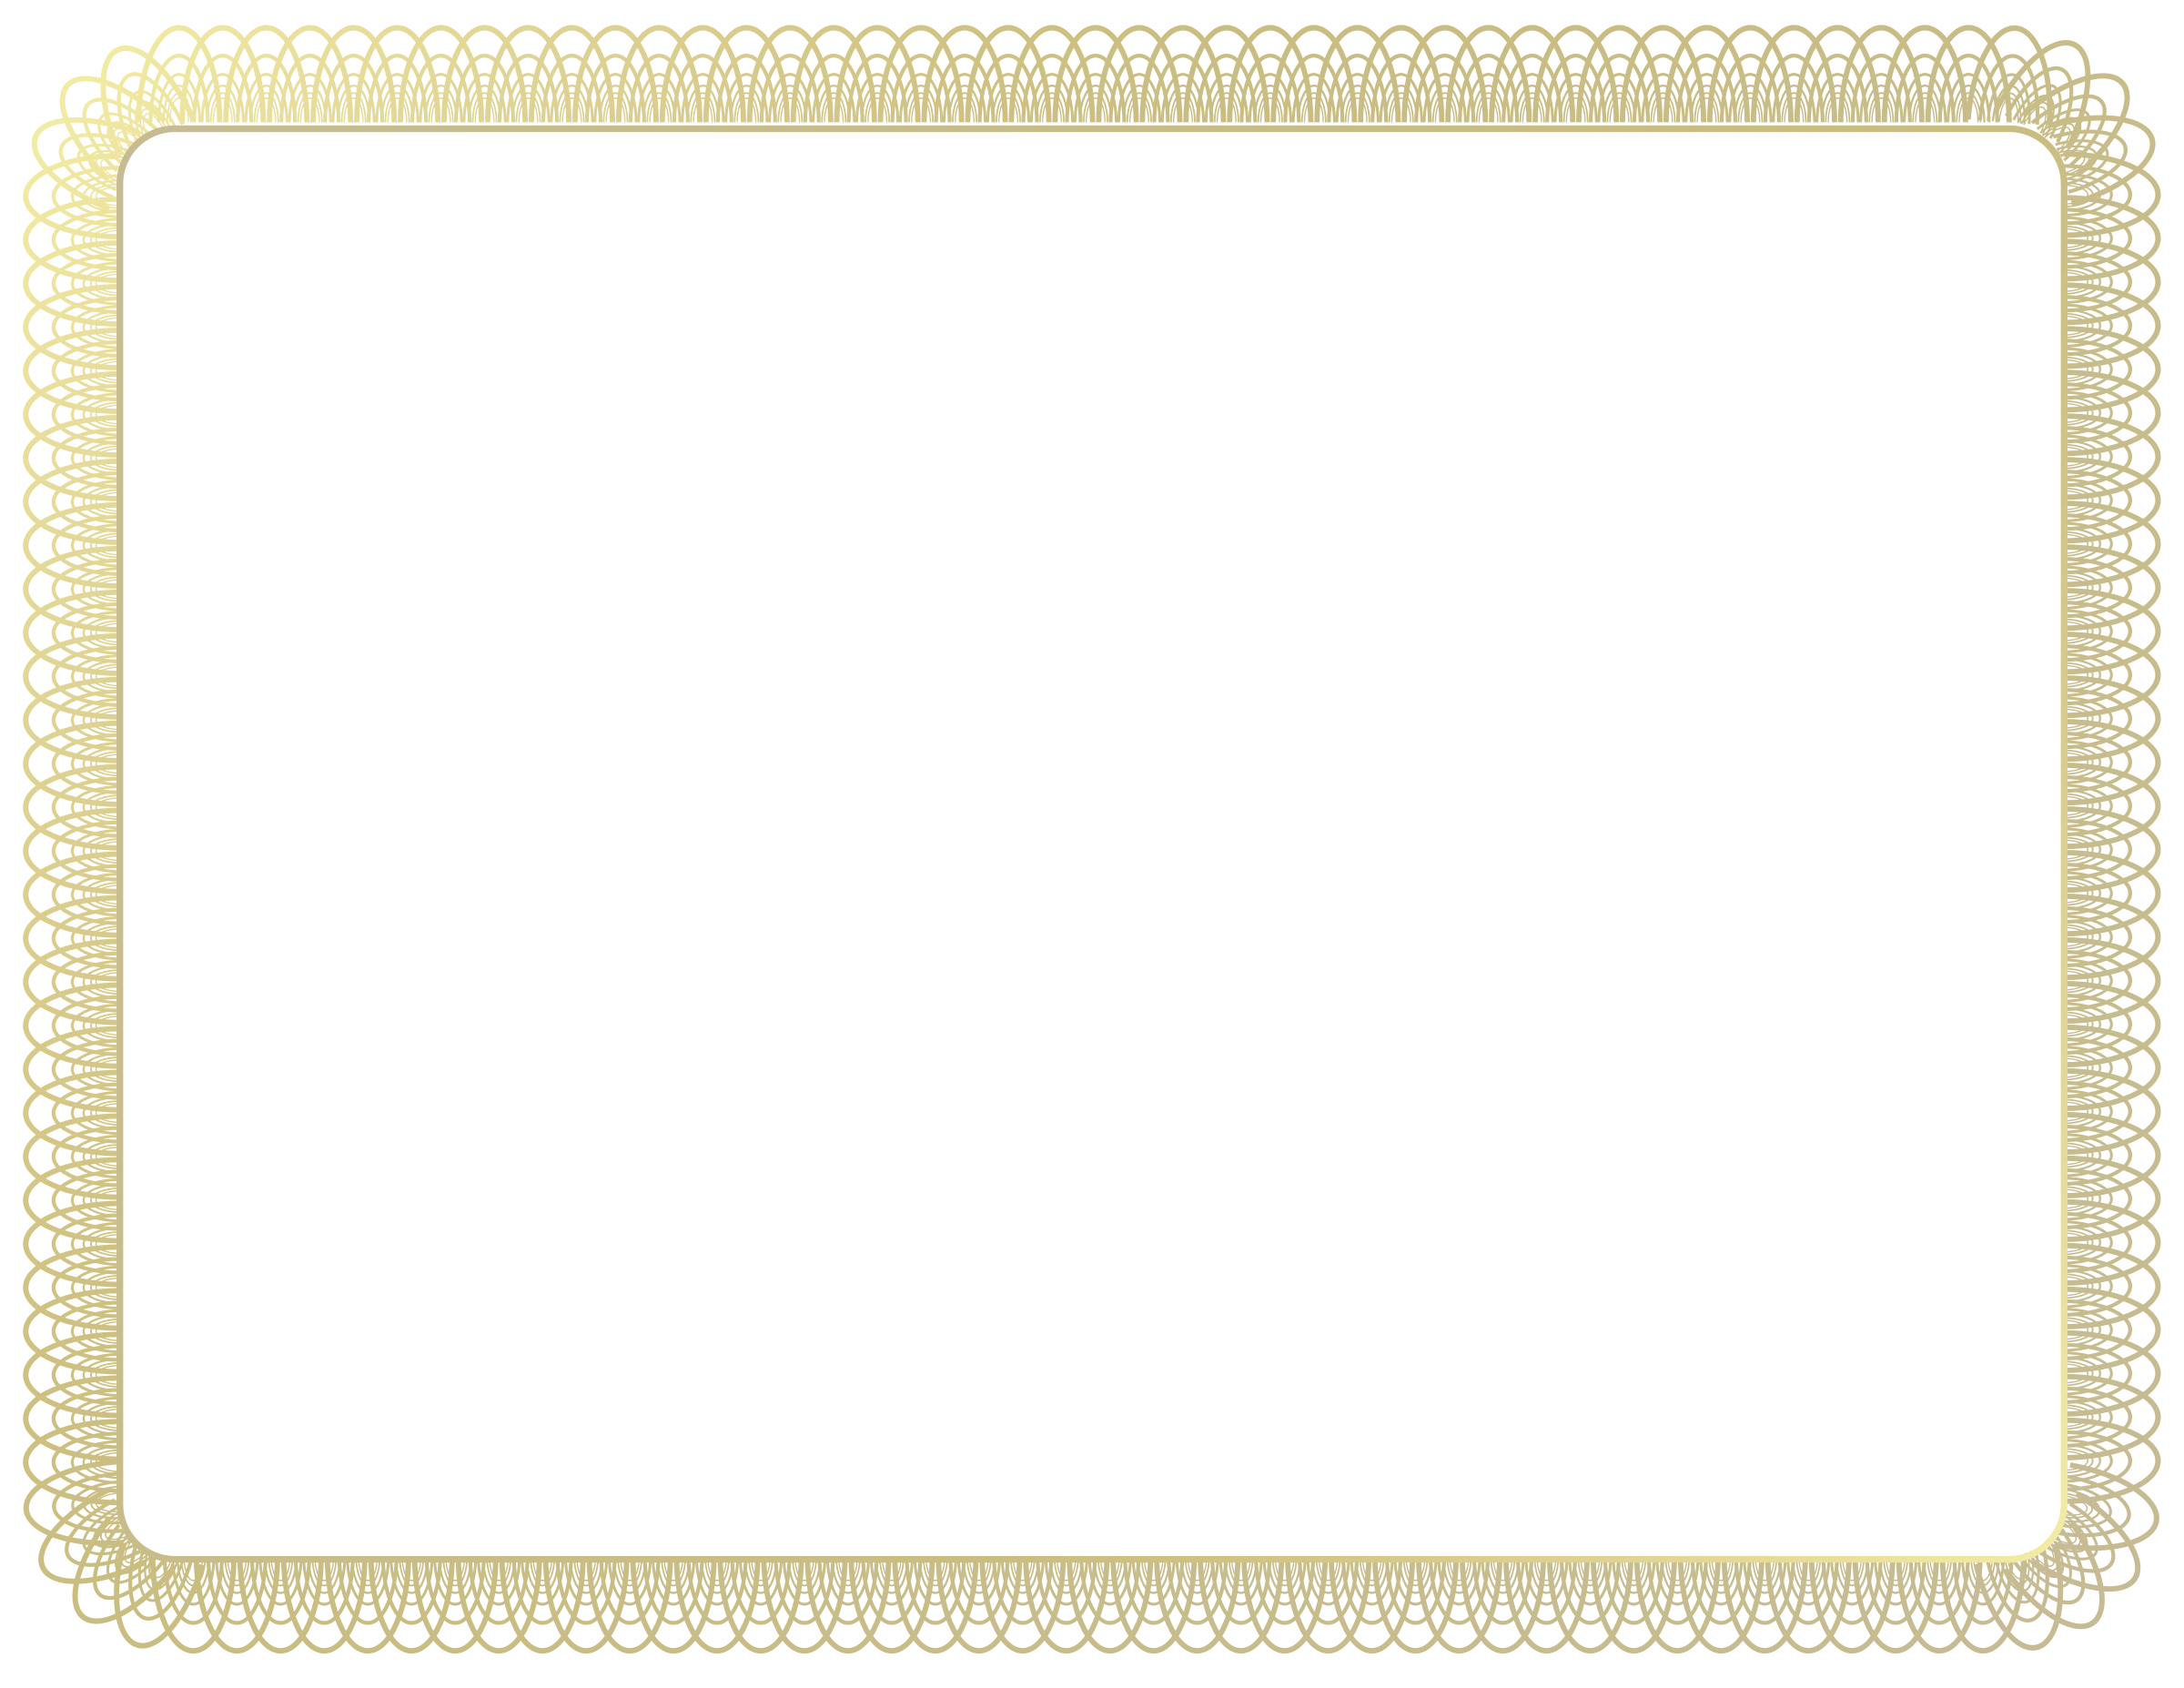 Certificate borders png. Clipart border big image